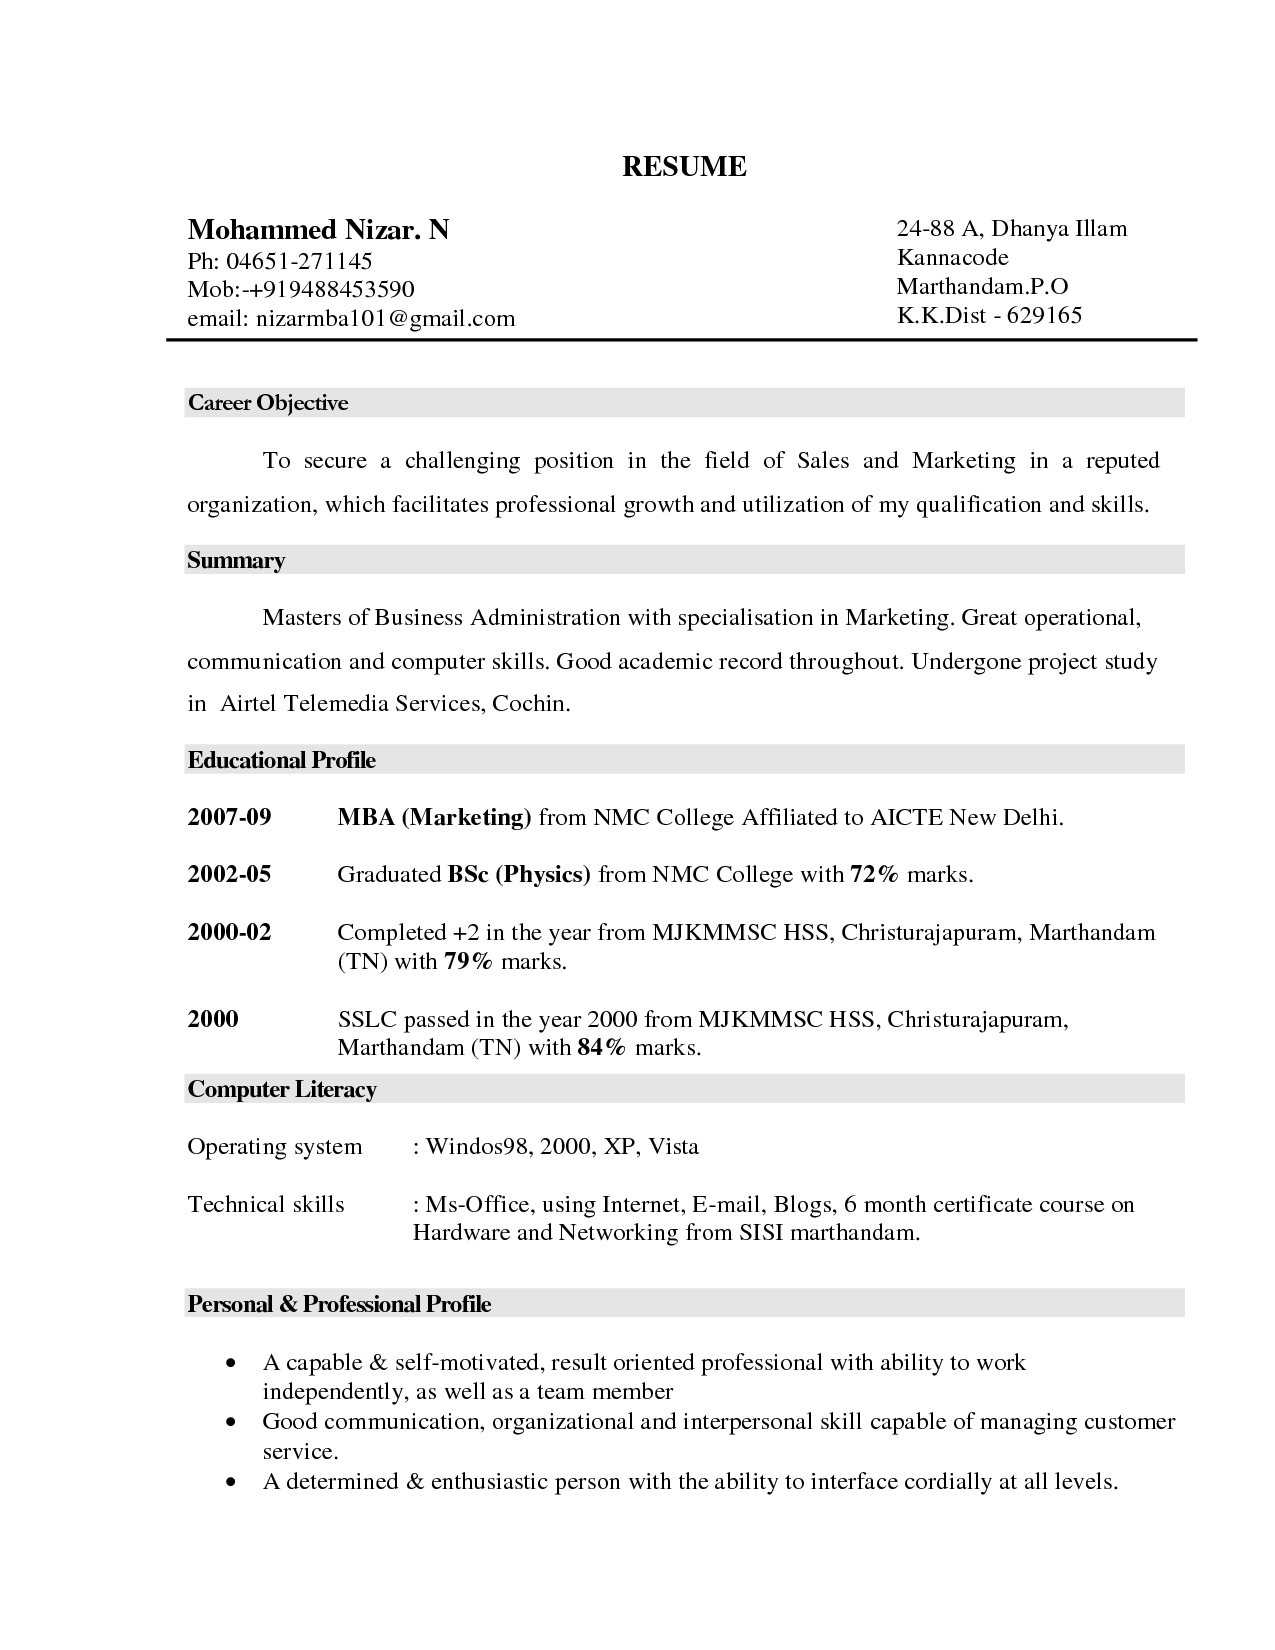 A Good Resume Objective Tips For Resumes Objective Example Resume Marketing